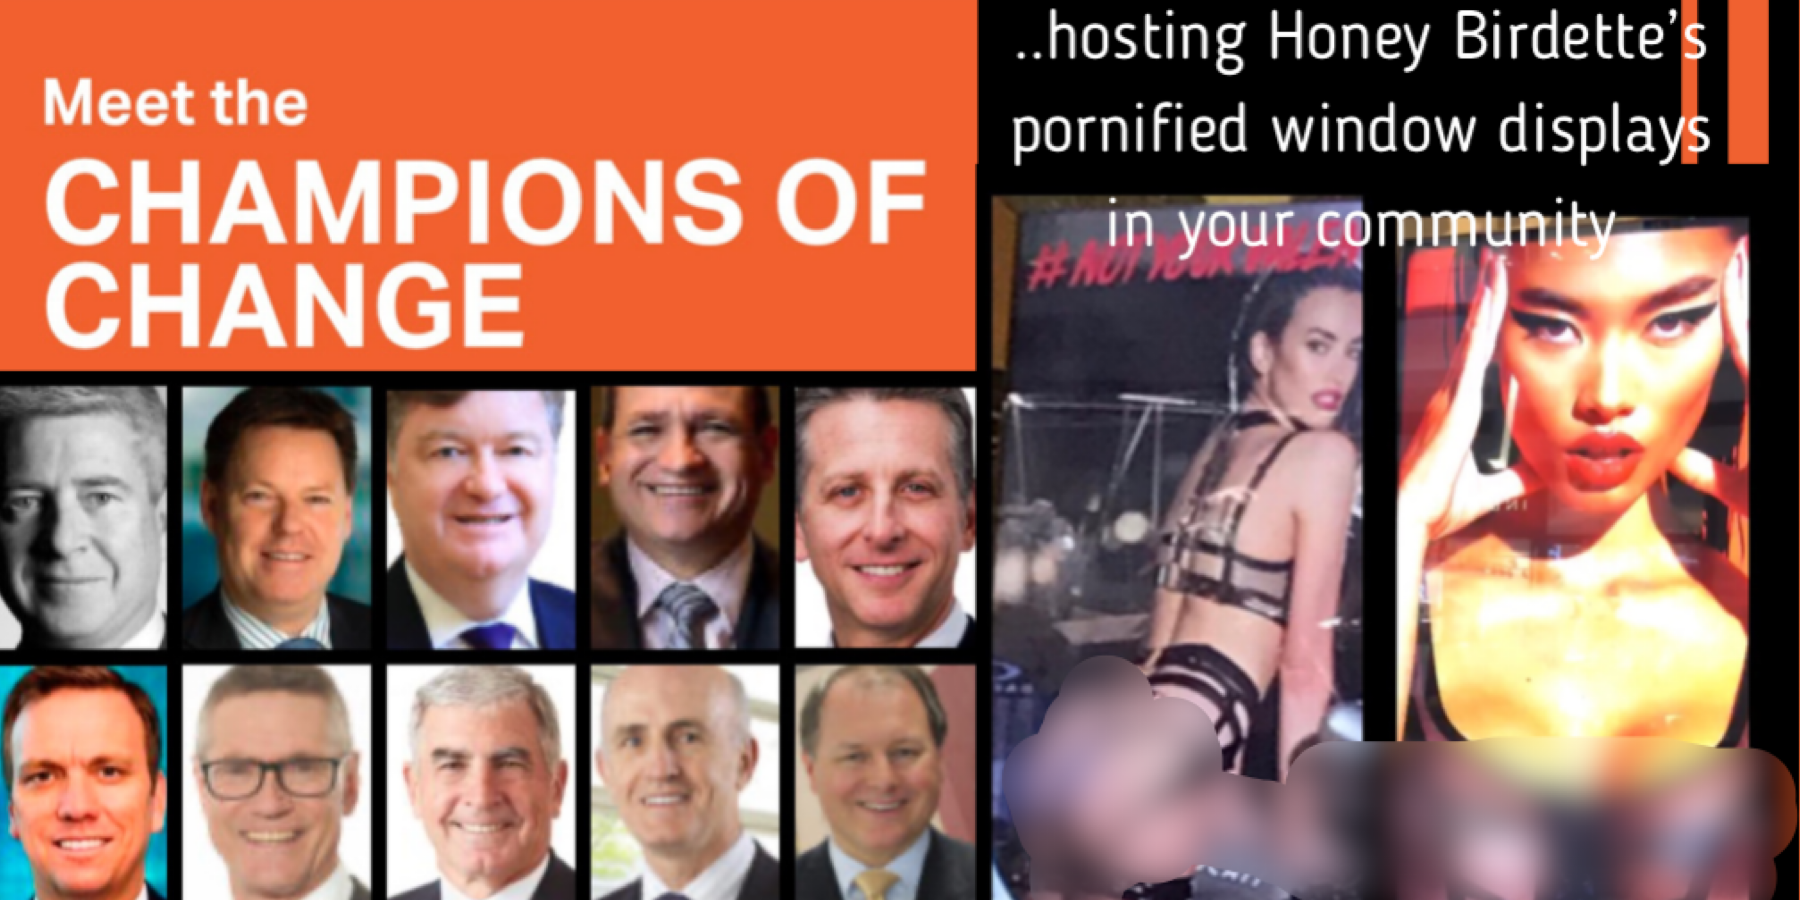 'Disrupting the system': New Male Champions report challenges workplace sexual harassment while Honey Birdette Male Champ landlords pepetuate it